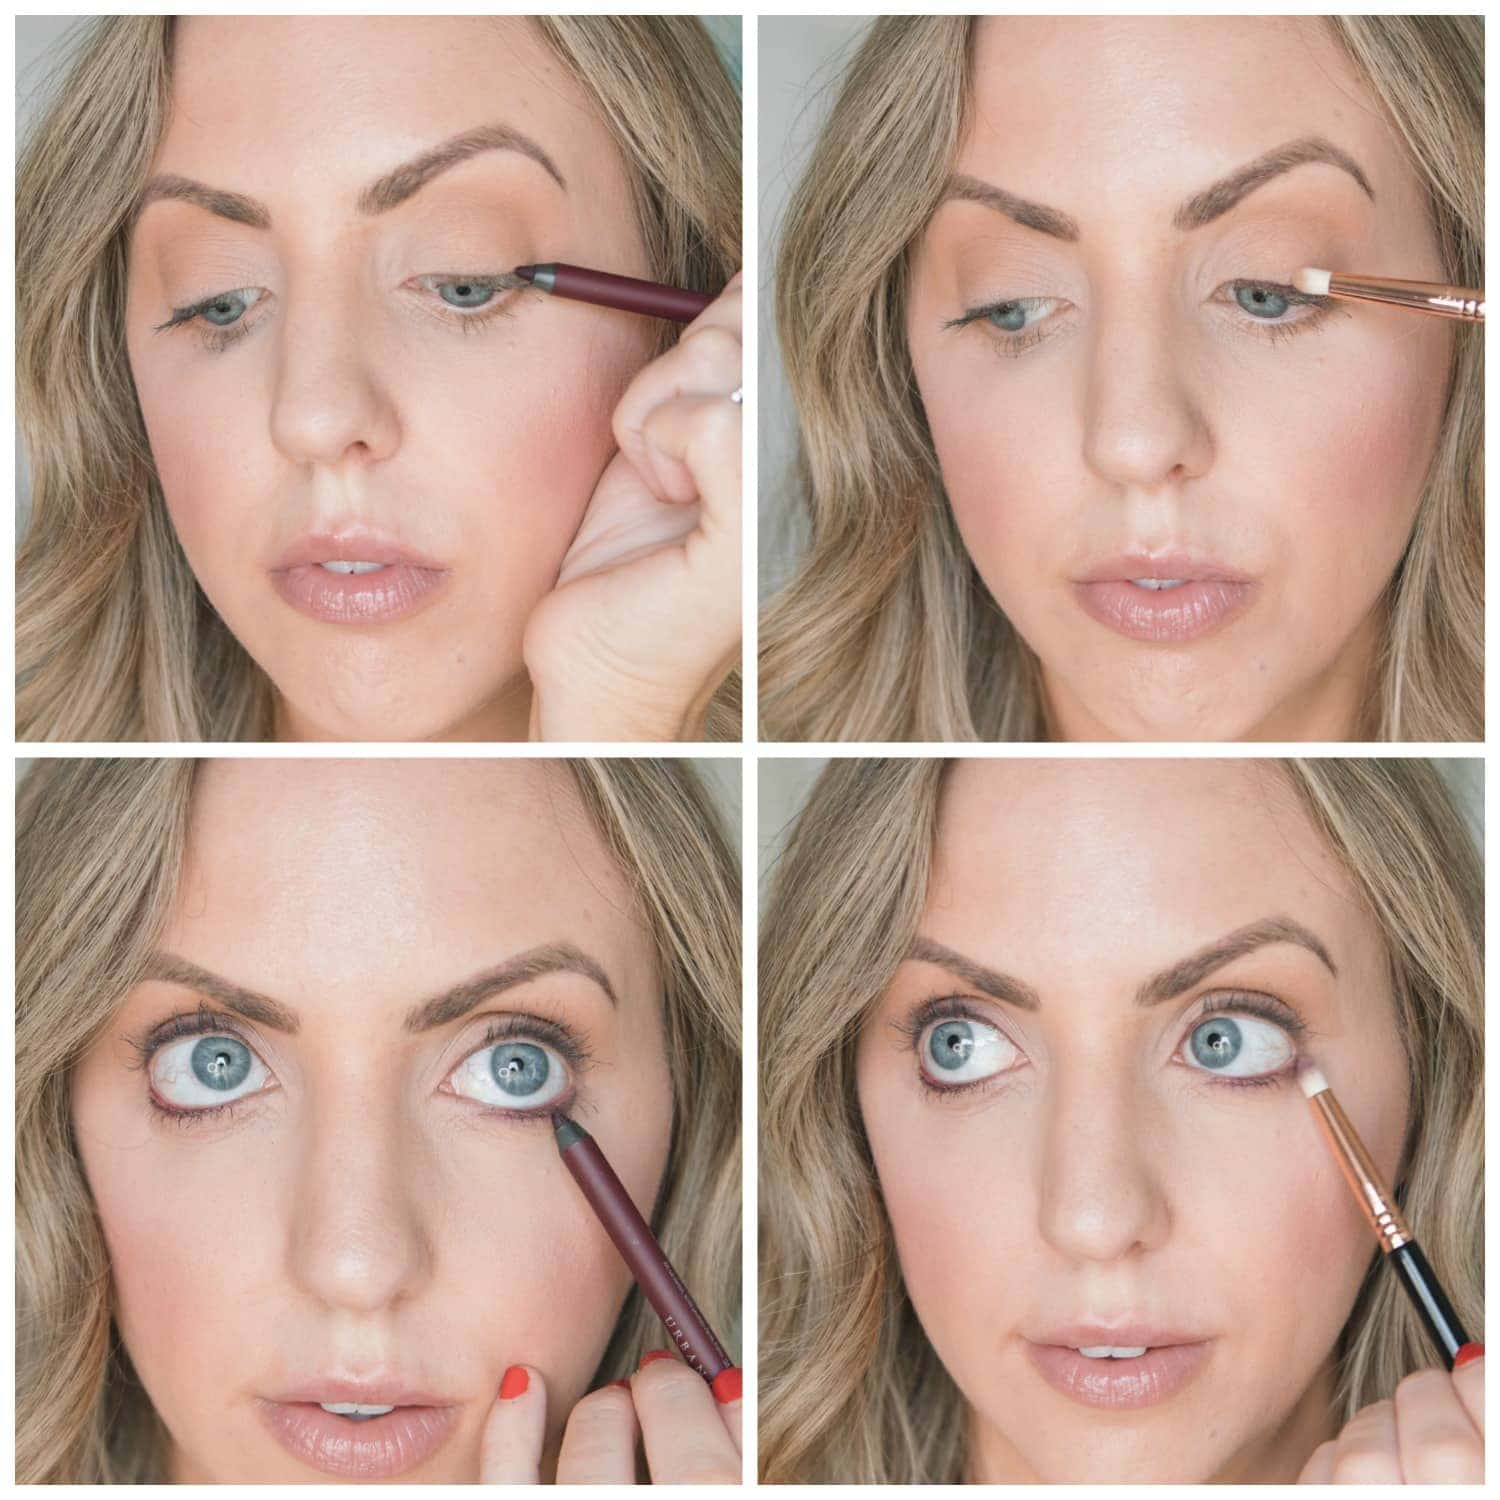 Meg O. on the Go shares this easy natural eye makeup tutorial